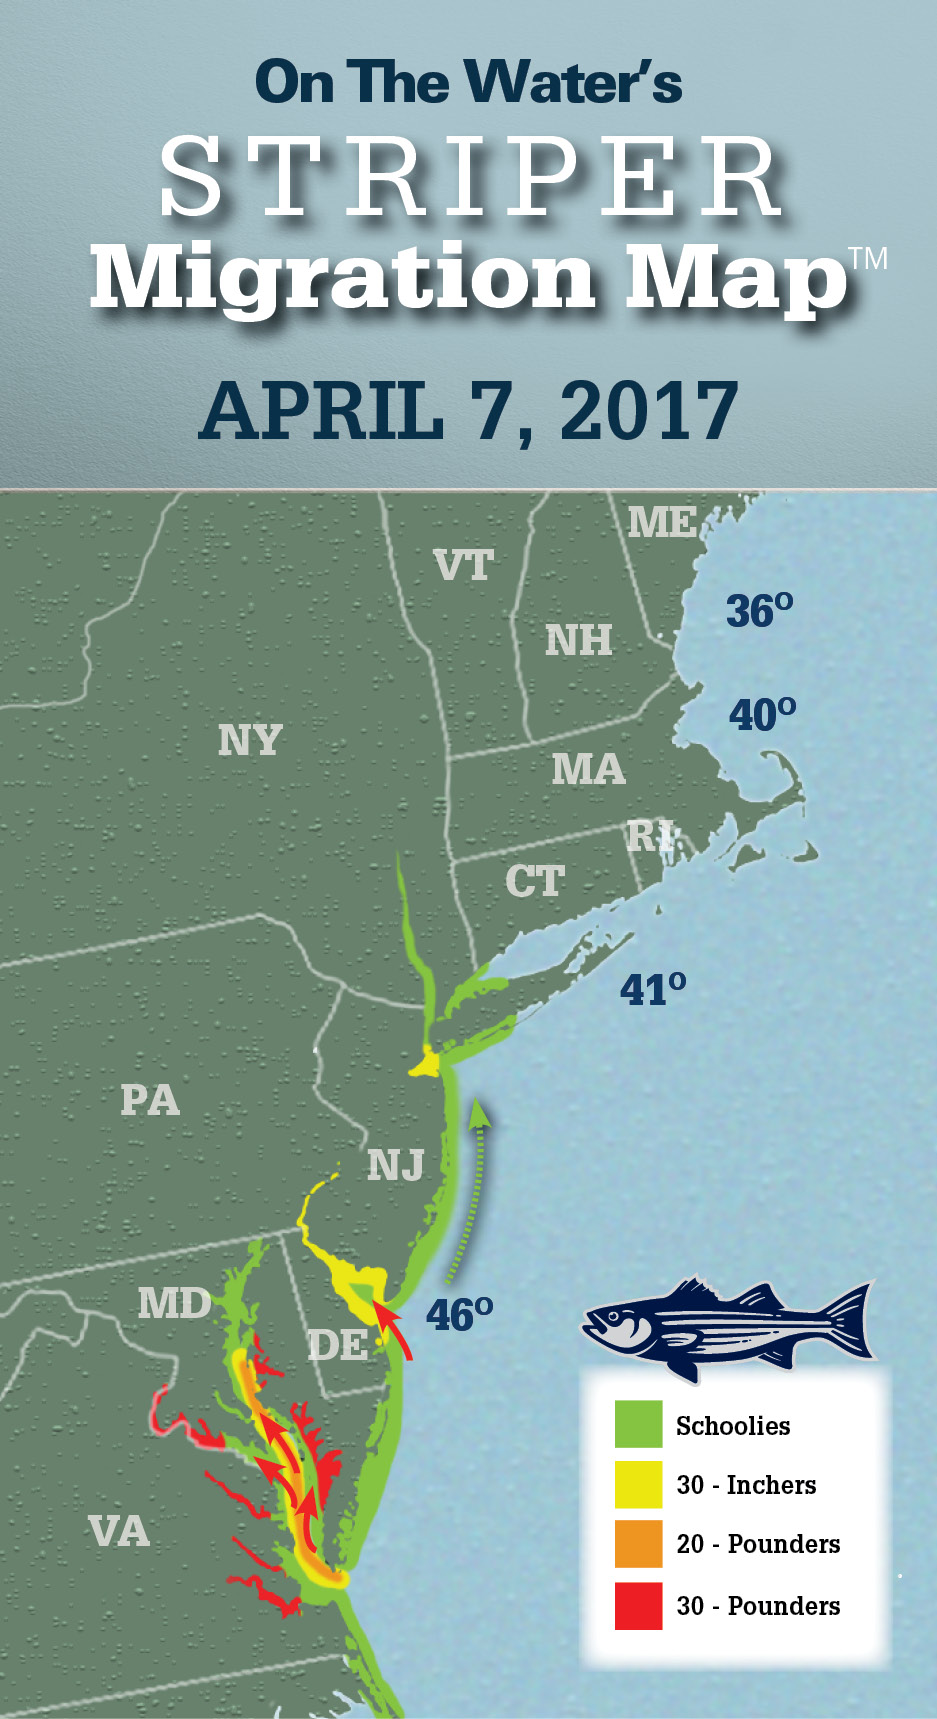 Striper migration map april 7 2017 on the water for Best striper fishing spot in ri